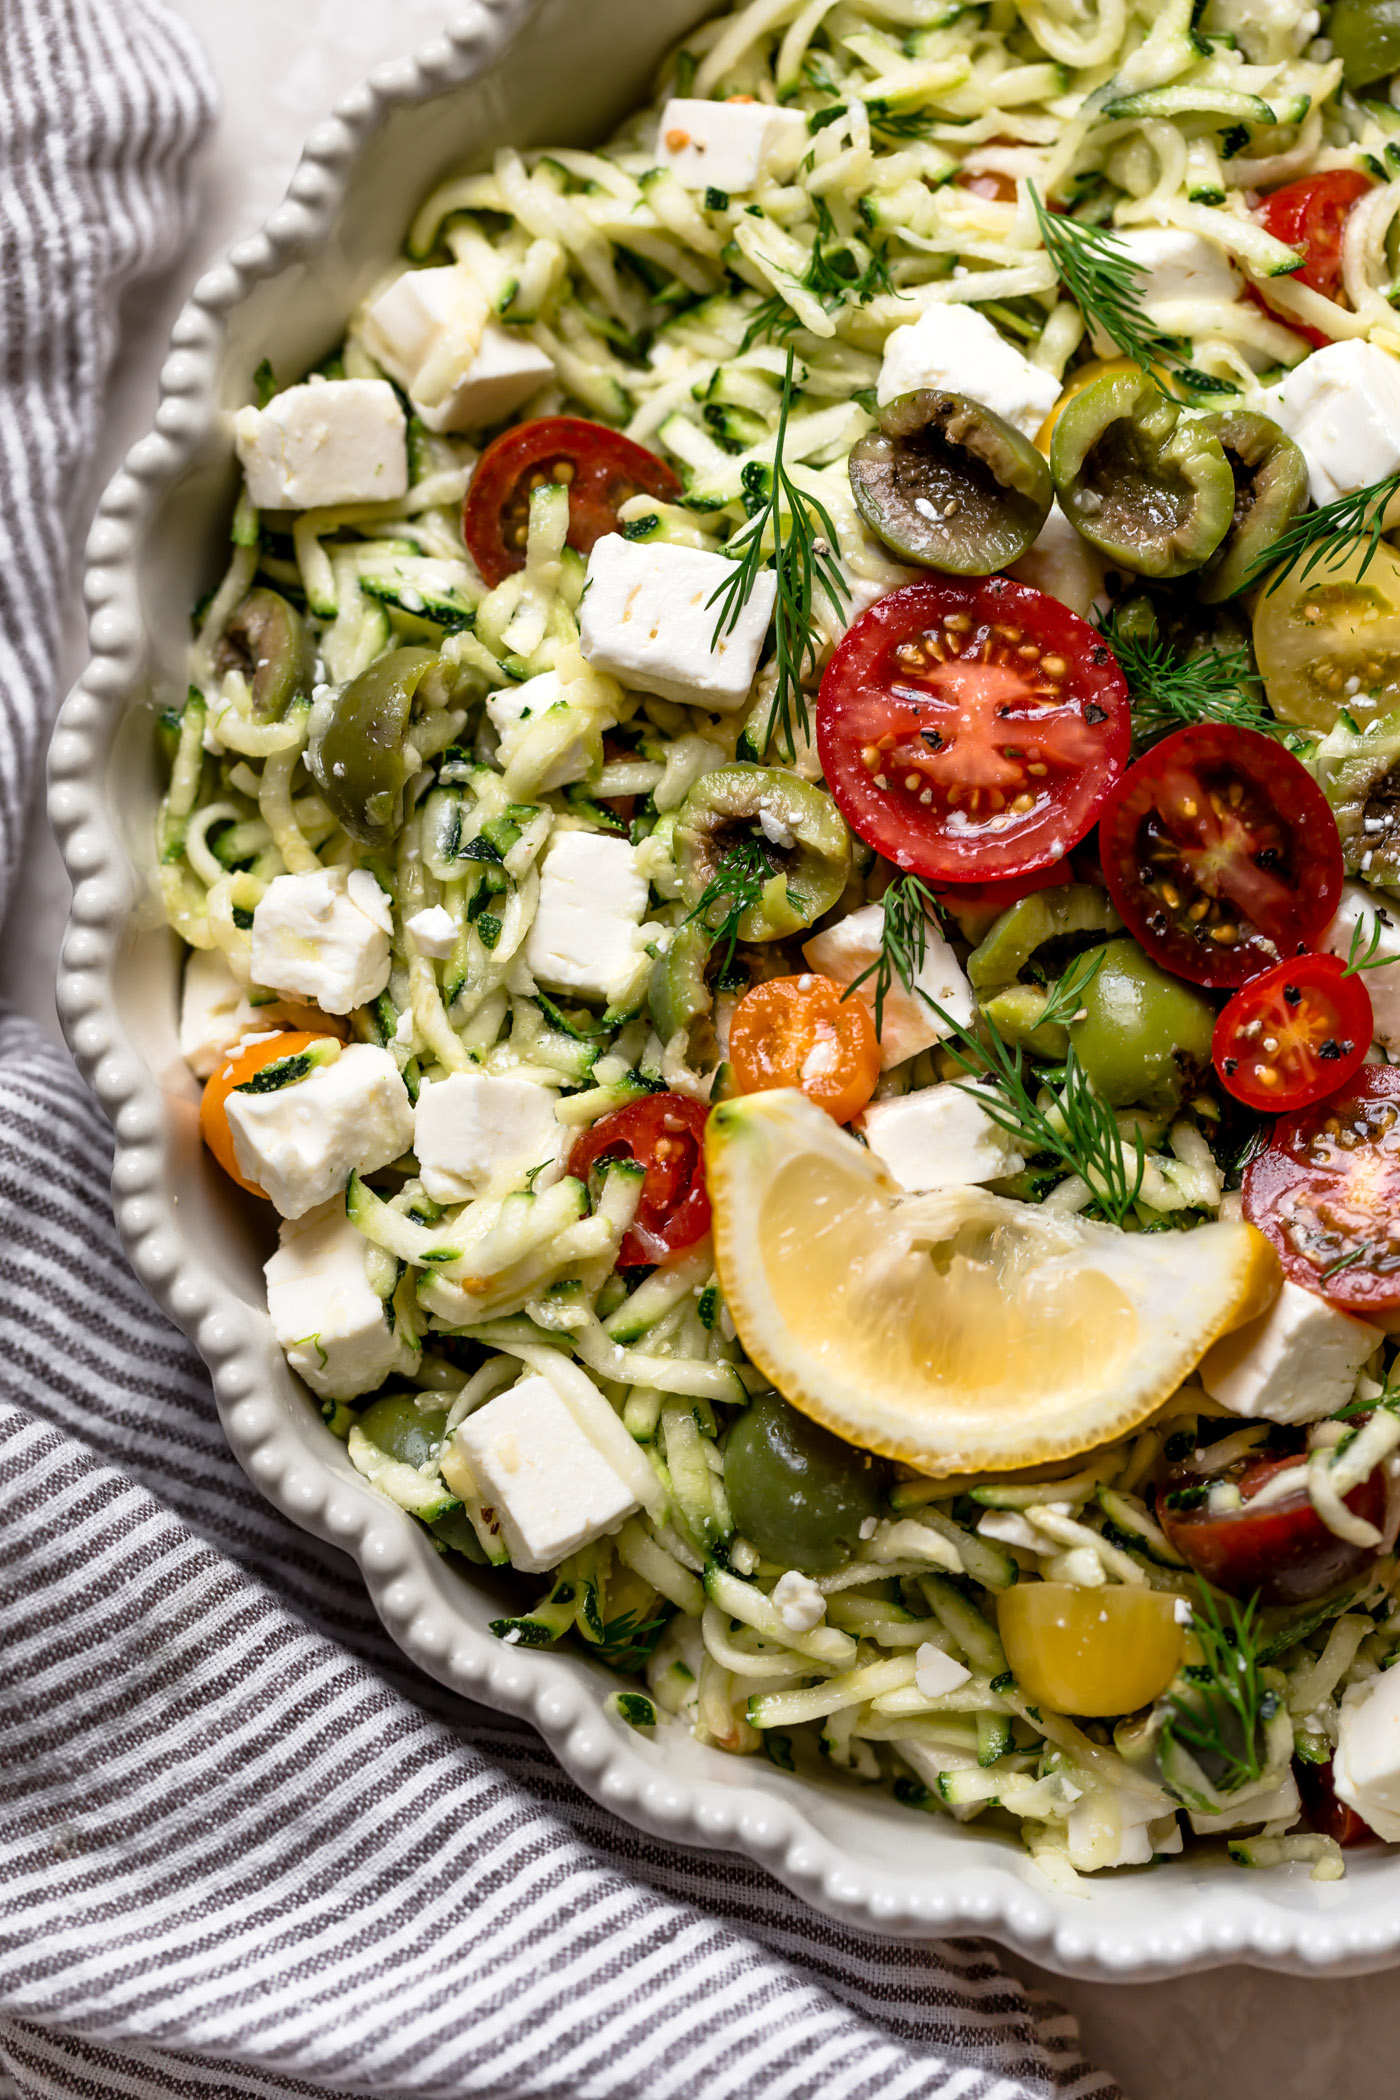 a fresh, fast, & light summertime grated zucchini salad! this easy salad has simple summer ingredients like shredded zucchini, tomatoes, castelvetrano olives, & tangy feta cheese. great for an easy weeknight dinner or side dish, or perfect for feeding a crowd at summer parties & BBQs! vegetarian, naturally gluten-free, low-carb, raw, totally healthy & fresh! #playswellwithbutter #zucchinisalad #gratedzucchini #zucchinirecipe #shreddedzucchini #summersalad #sidedish #rawsalad #lowcarbrecipe